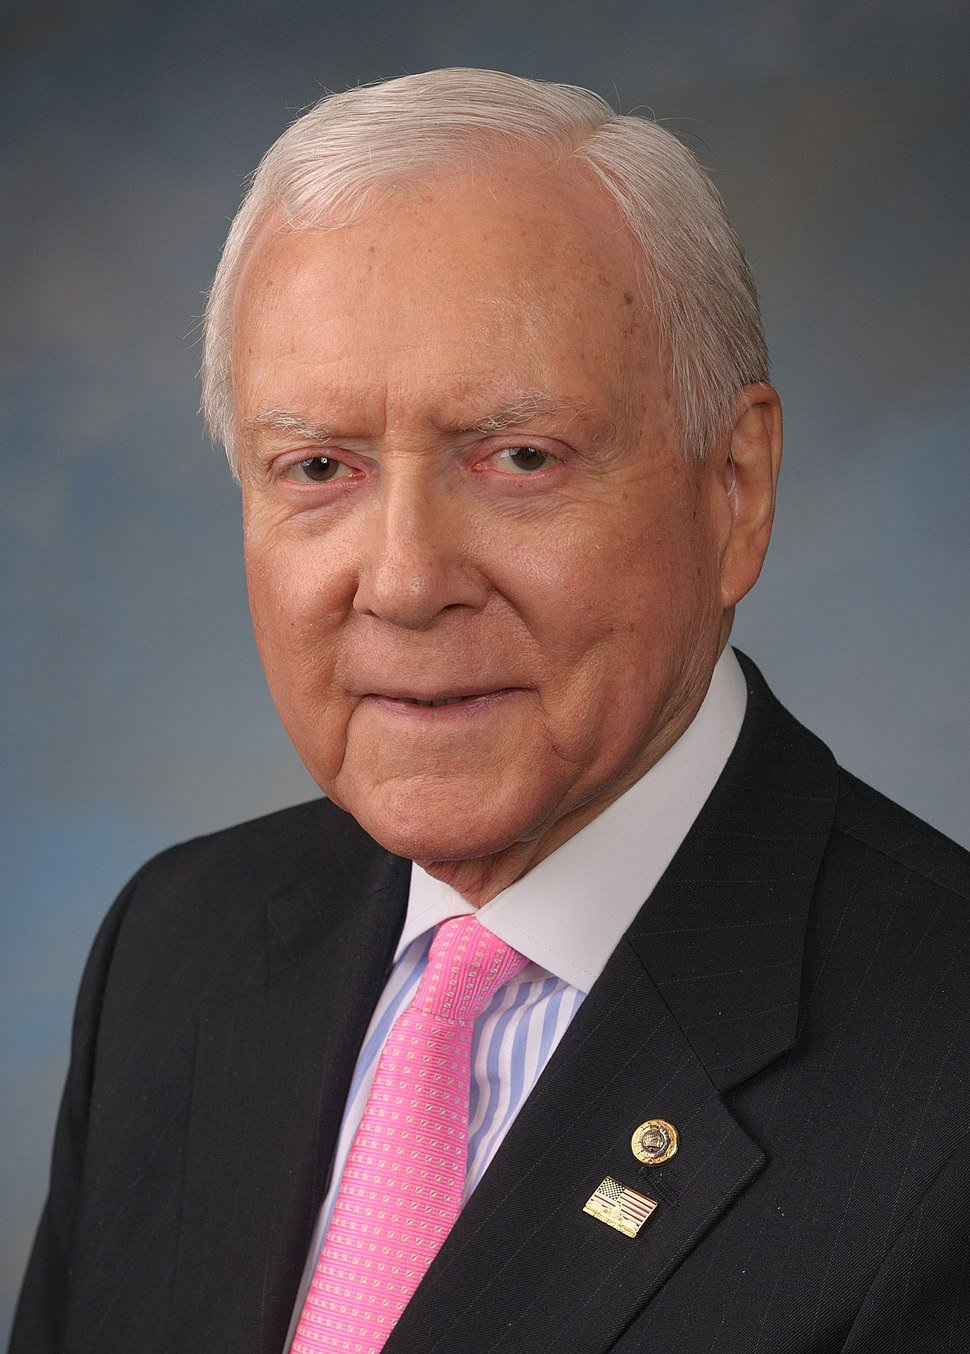 Orrin Hatch official photo, 2015 (cropped)